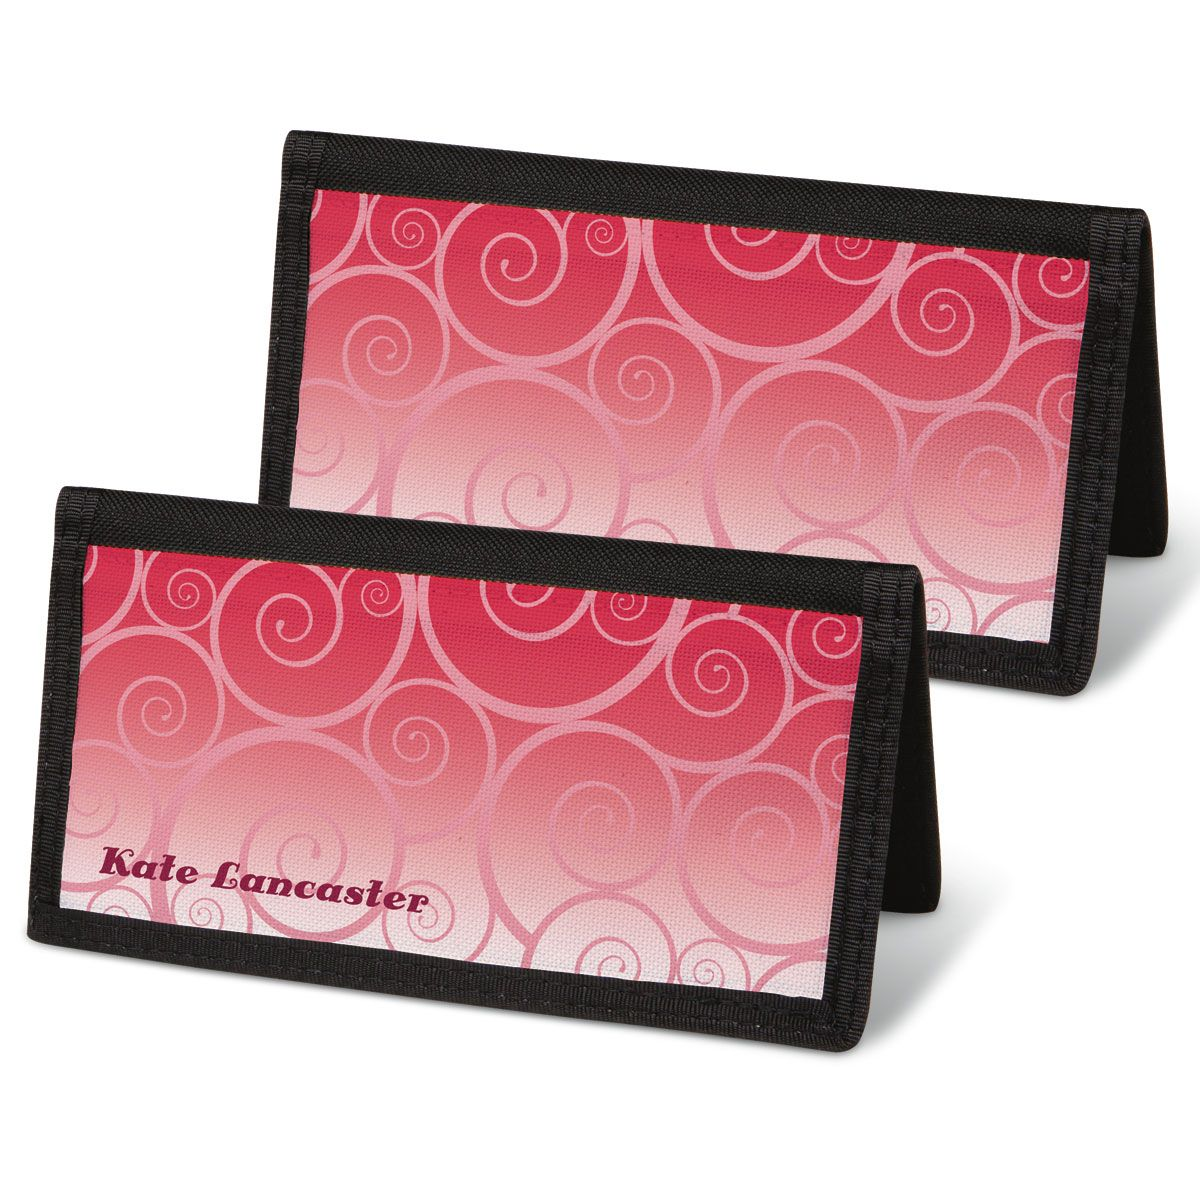 Swirly Girly Personal Checkbook Covers